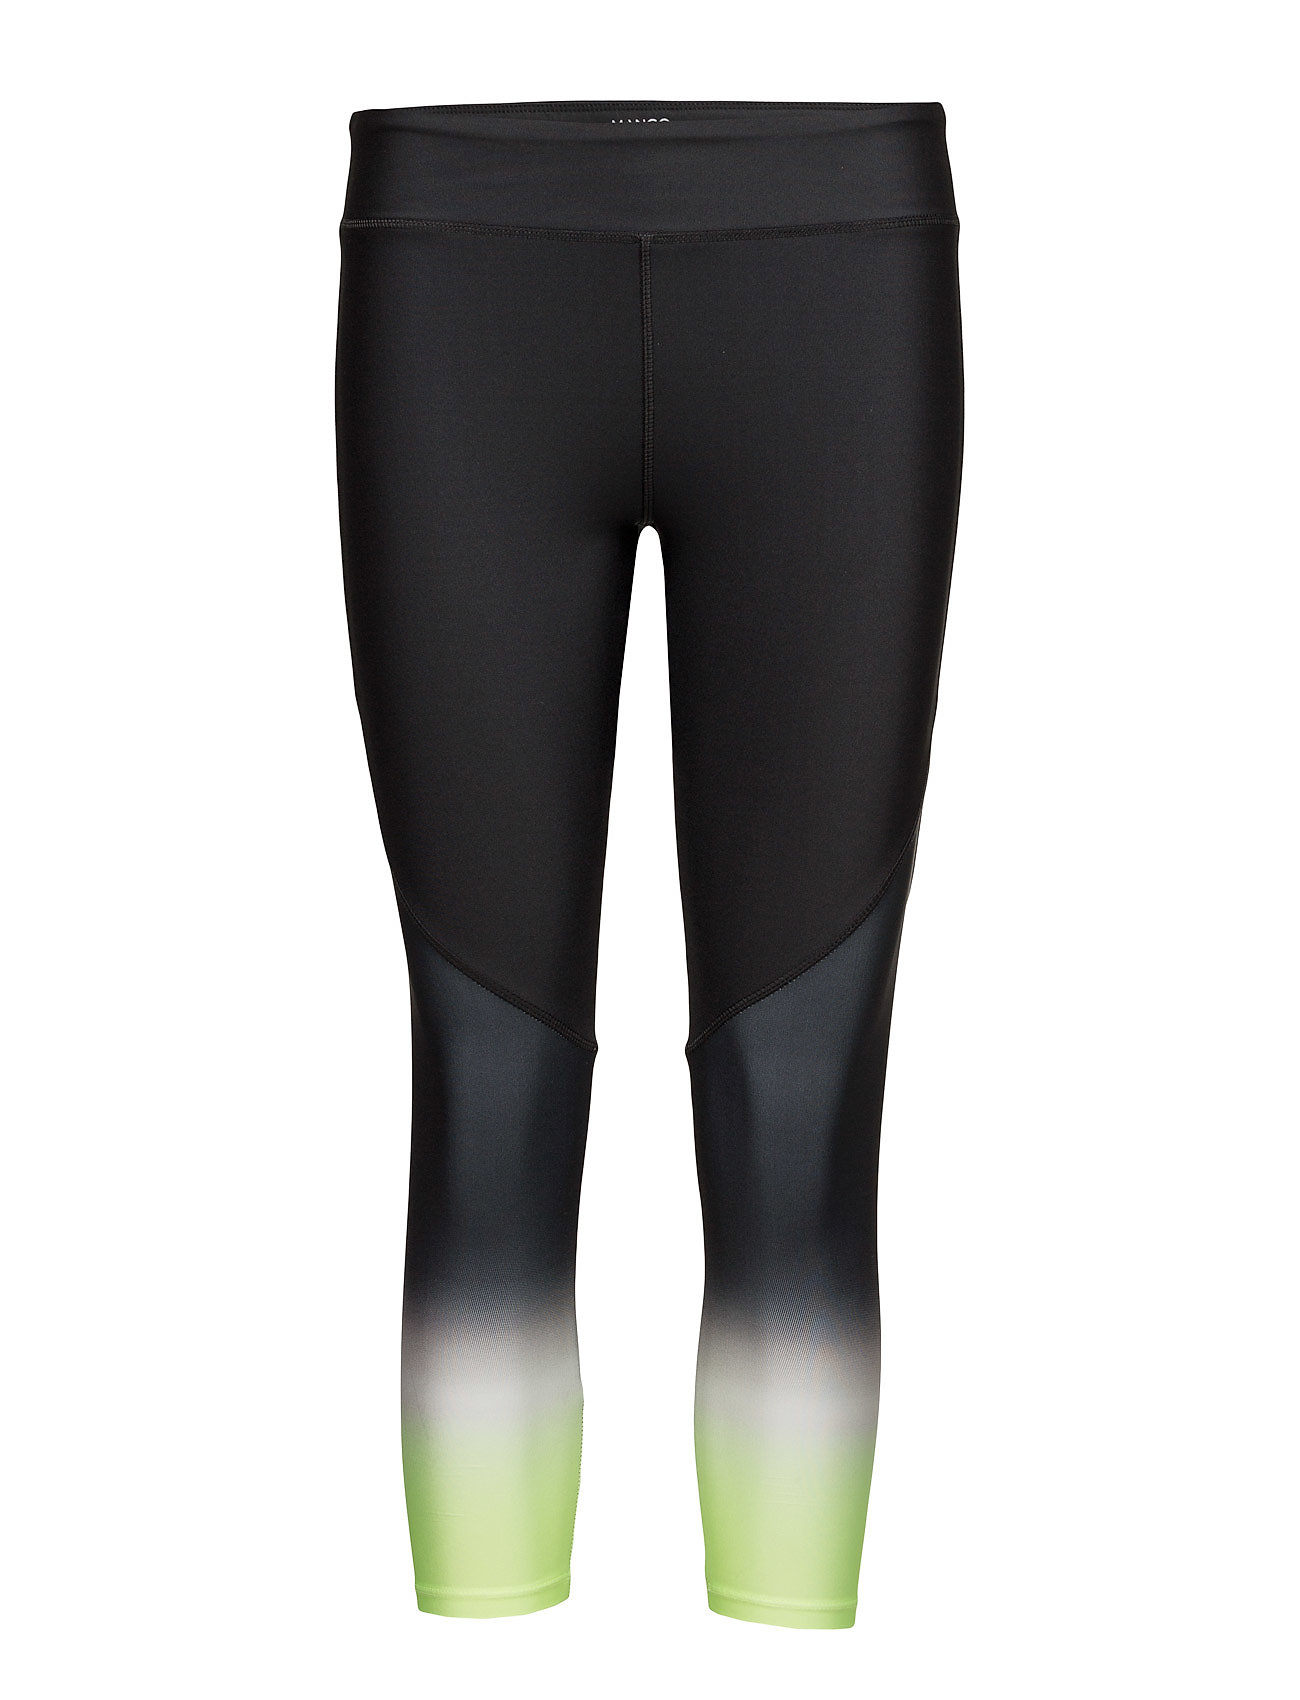 Gradient Leggings Mango Sports Sportstøj til Unisex i